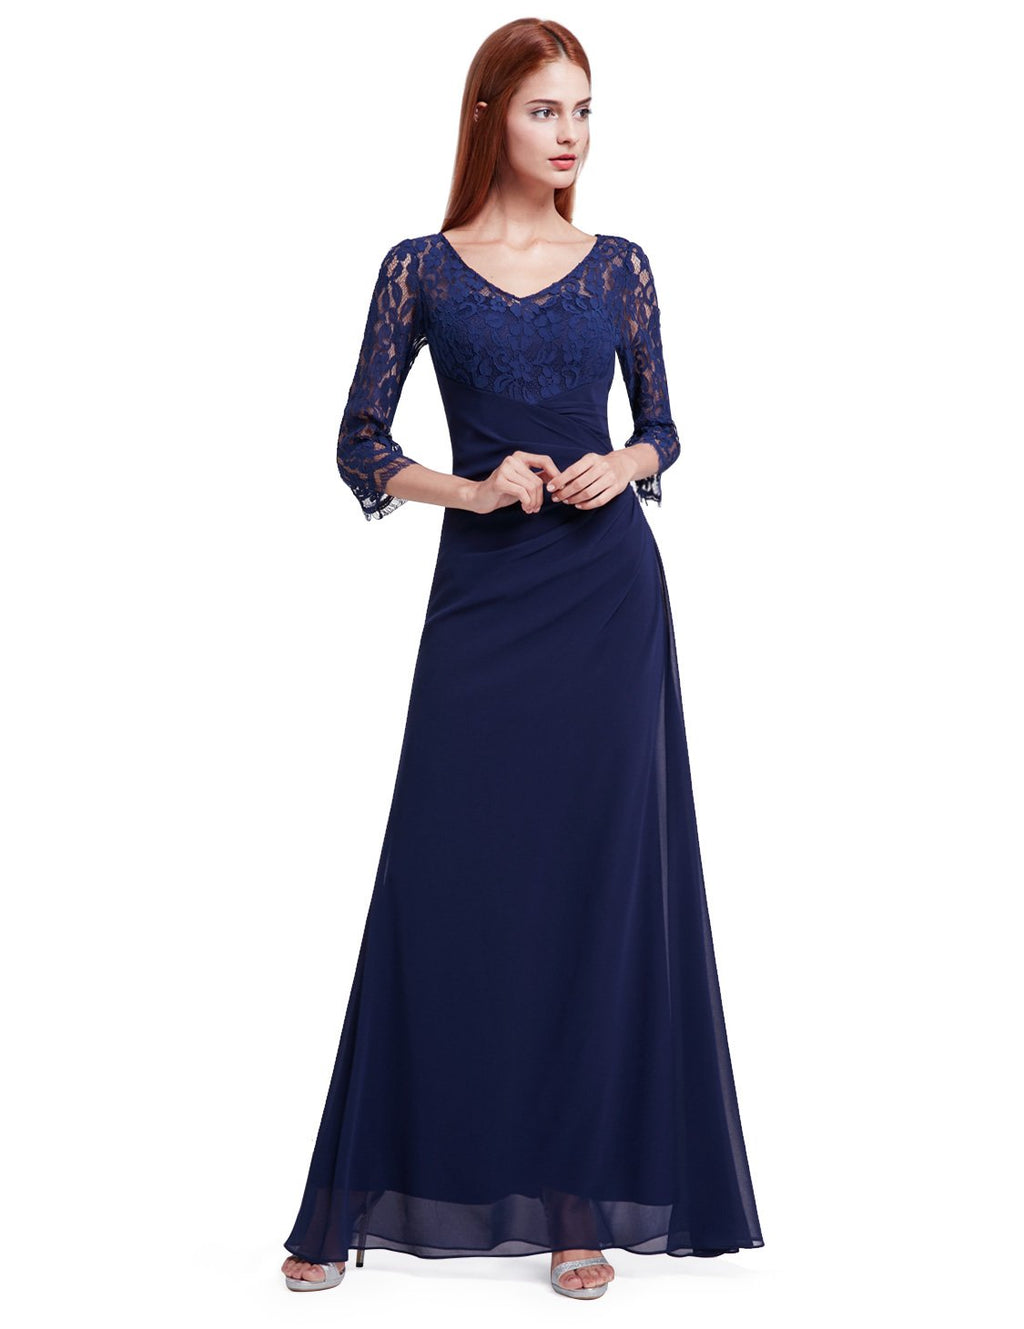 Half Sleeves Gorgeous Long Maxi Gown Navy Blue